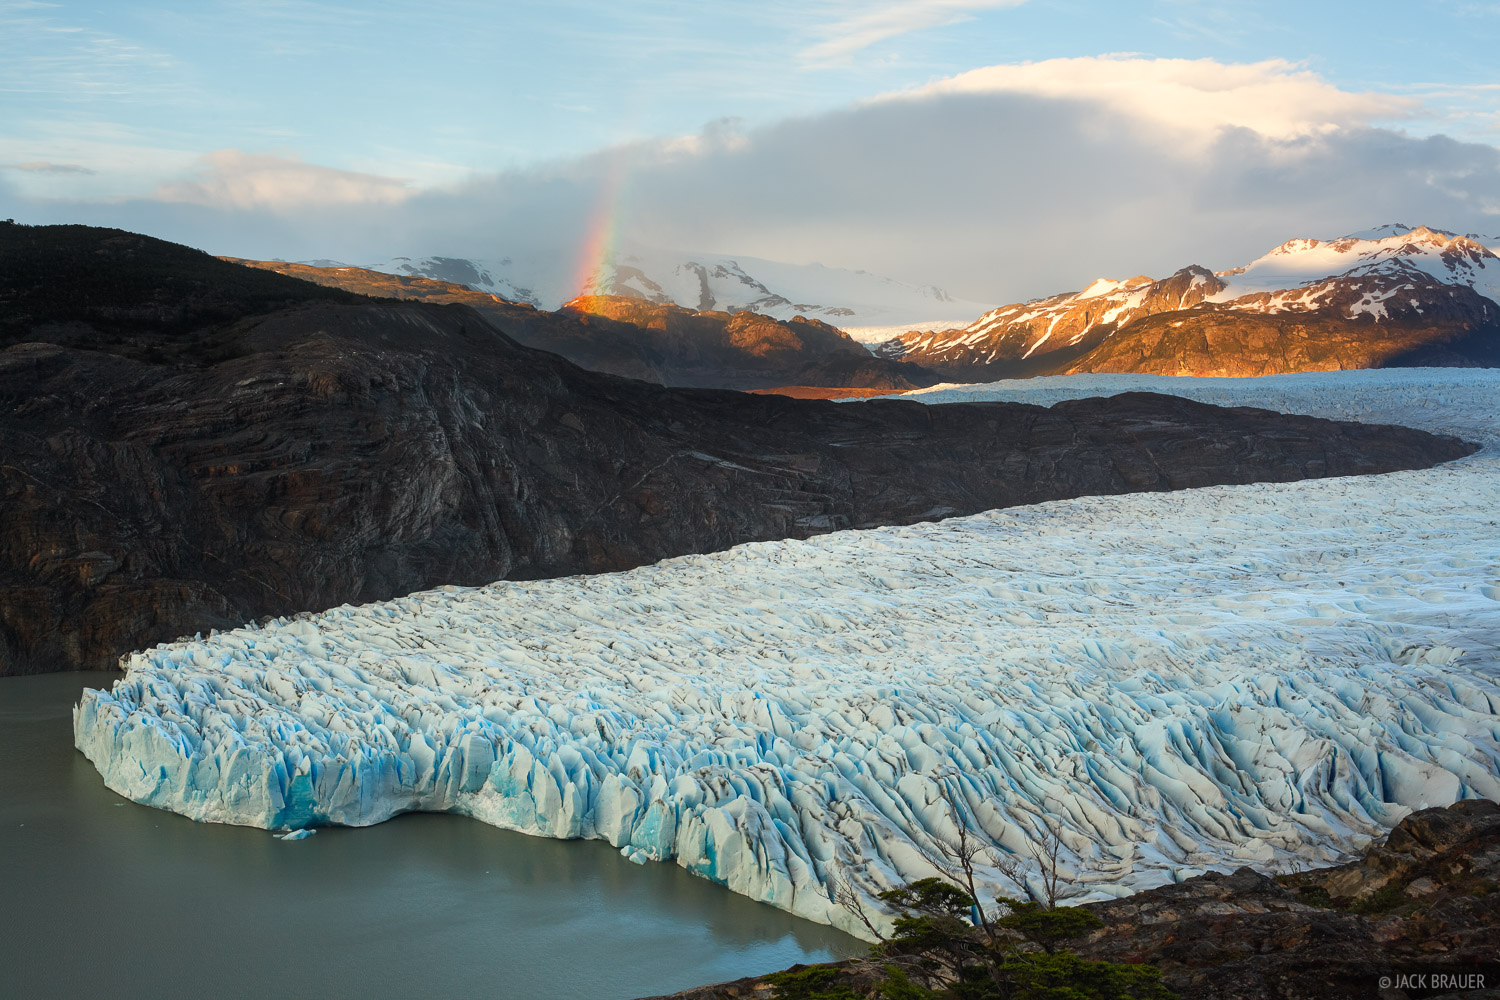 A small rainbow appears above the snout of Glaciar Grey at sunrise.